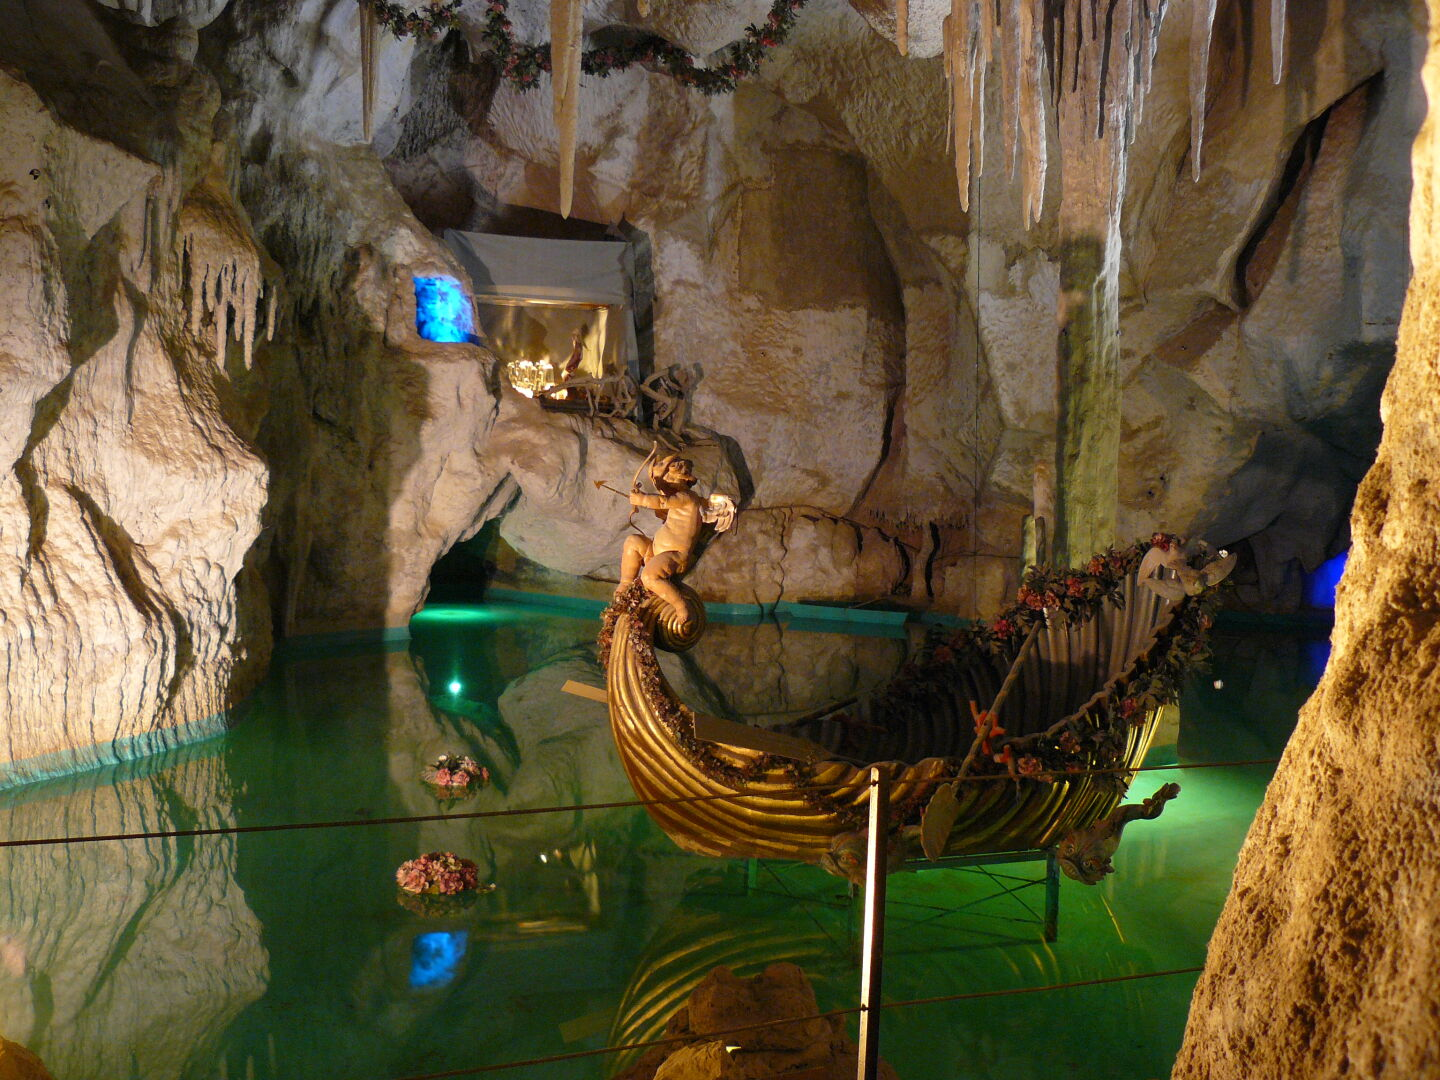 The grotto of Castle Linderhof, an artificial cave that King Ludwig had fitted with stage designs from Richard Wagner operas so he could enjoy his private performances in the appropriate atmosphere.